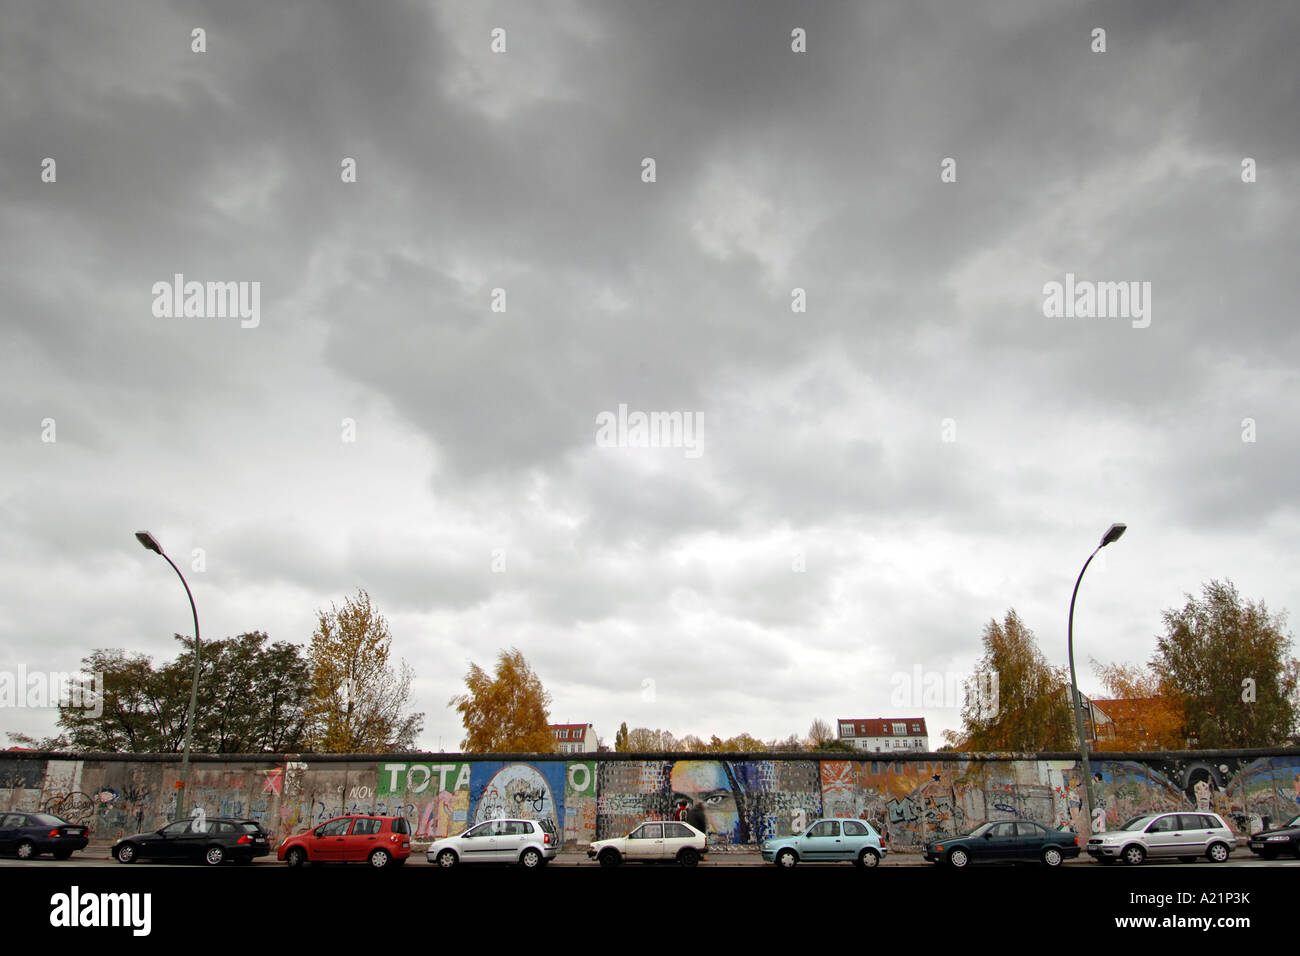 Cars parked along the East Side Gallery, a preserved commemorative section of the Berlin wall in Germany. - Stock Image